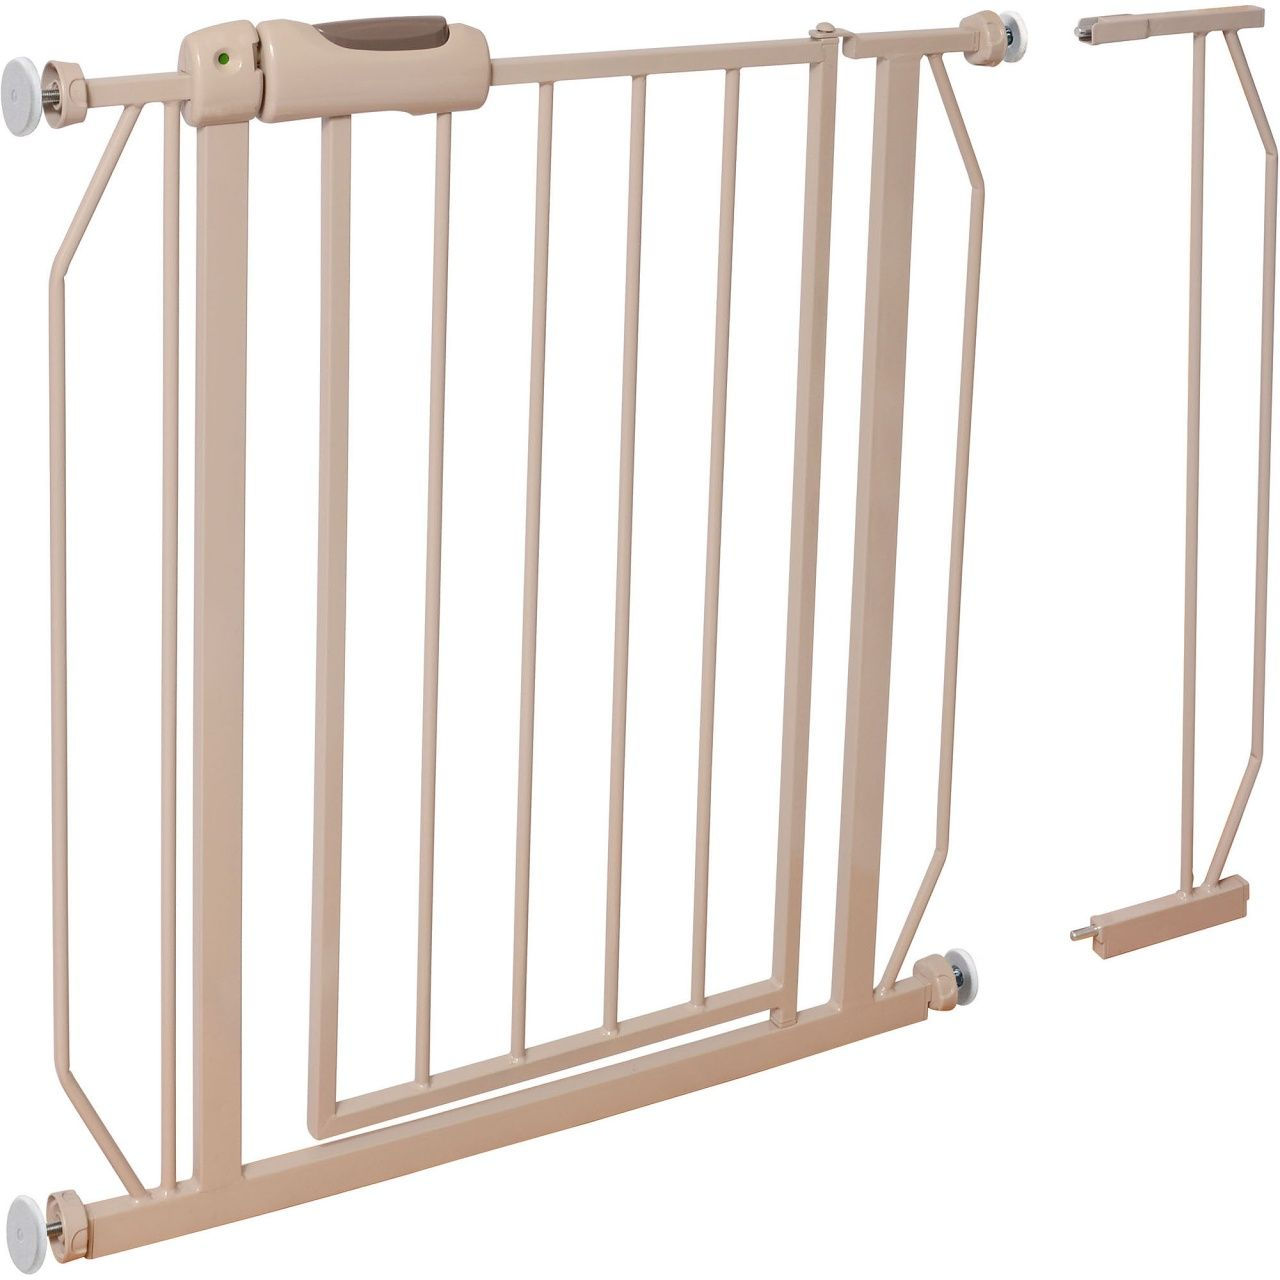 Evenflo top Of Stair Baby Gate in 2020 Stair railing